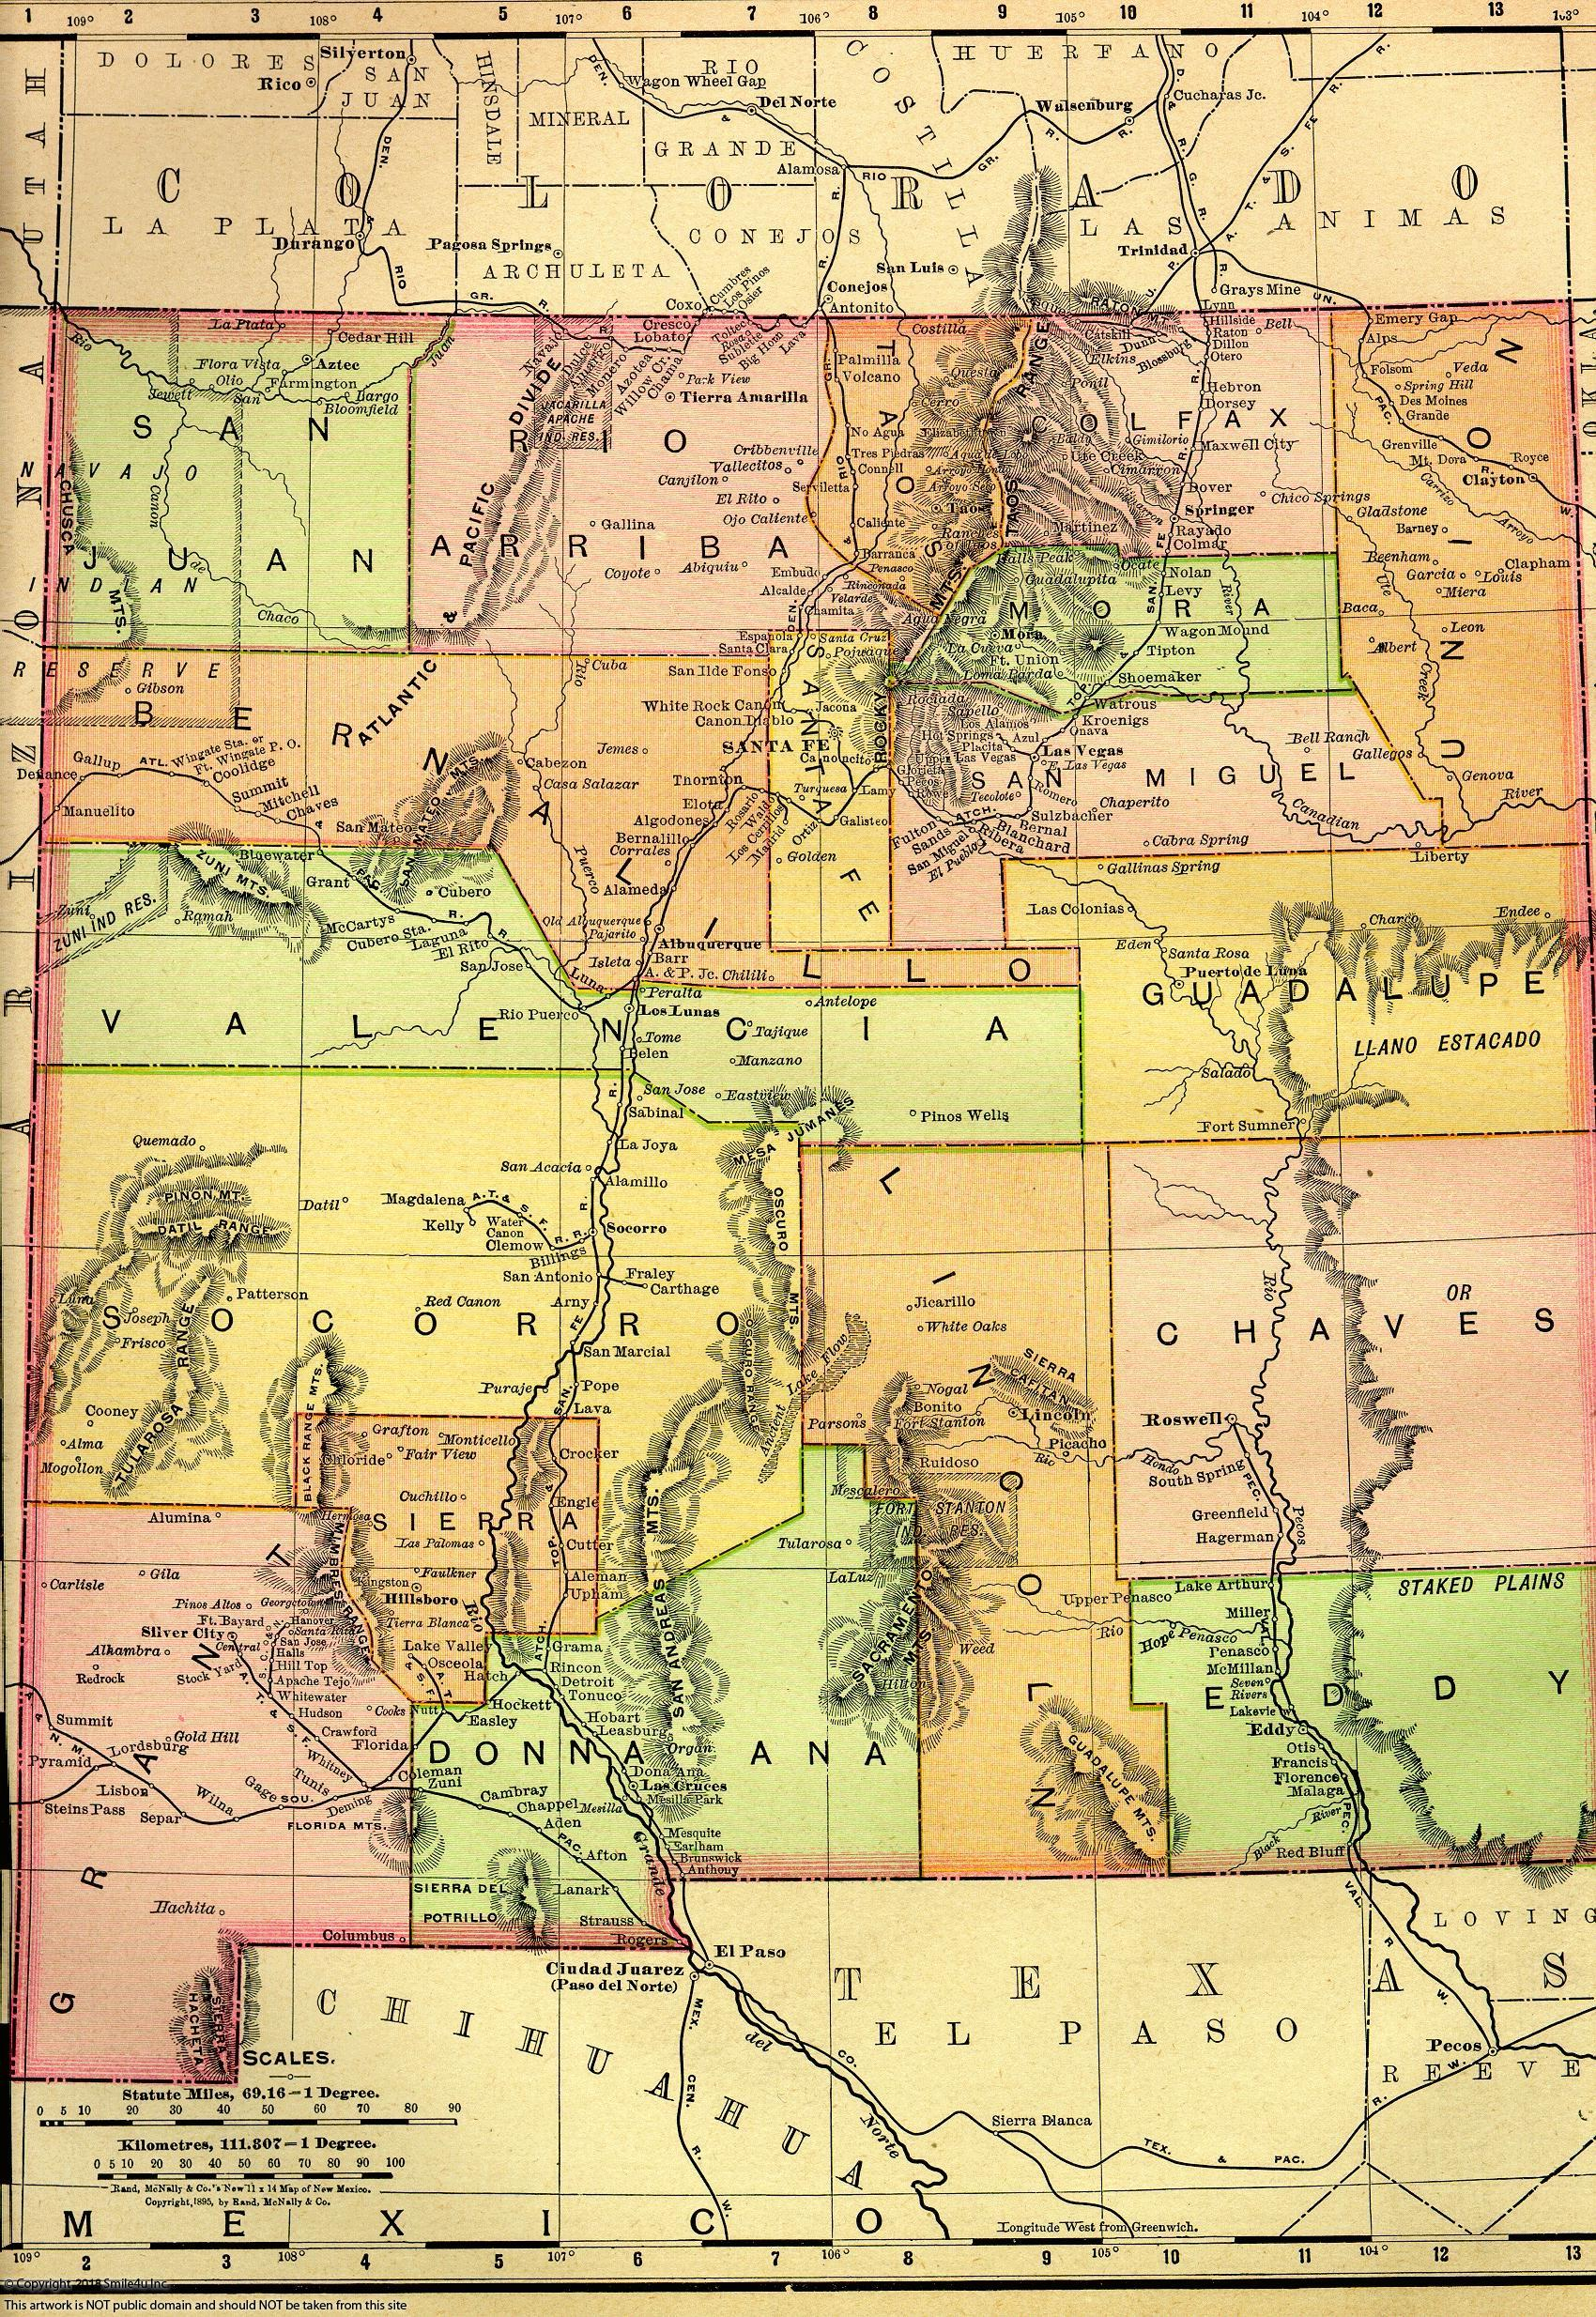 935840_watermarked_New Mexico State Map in 1895.jpg